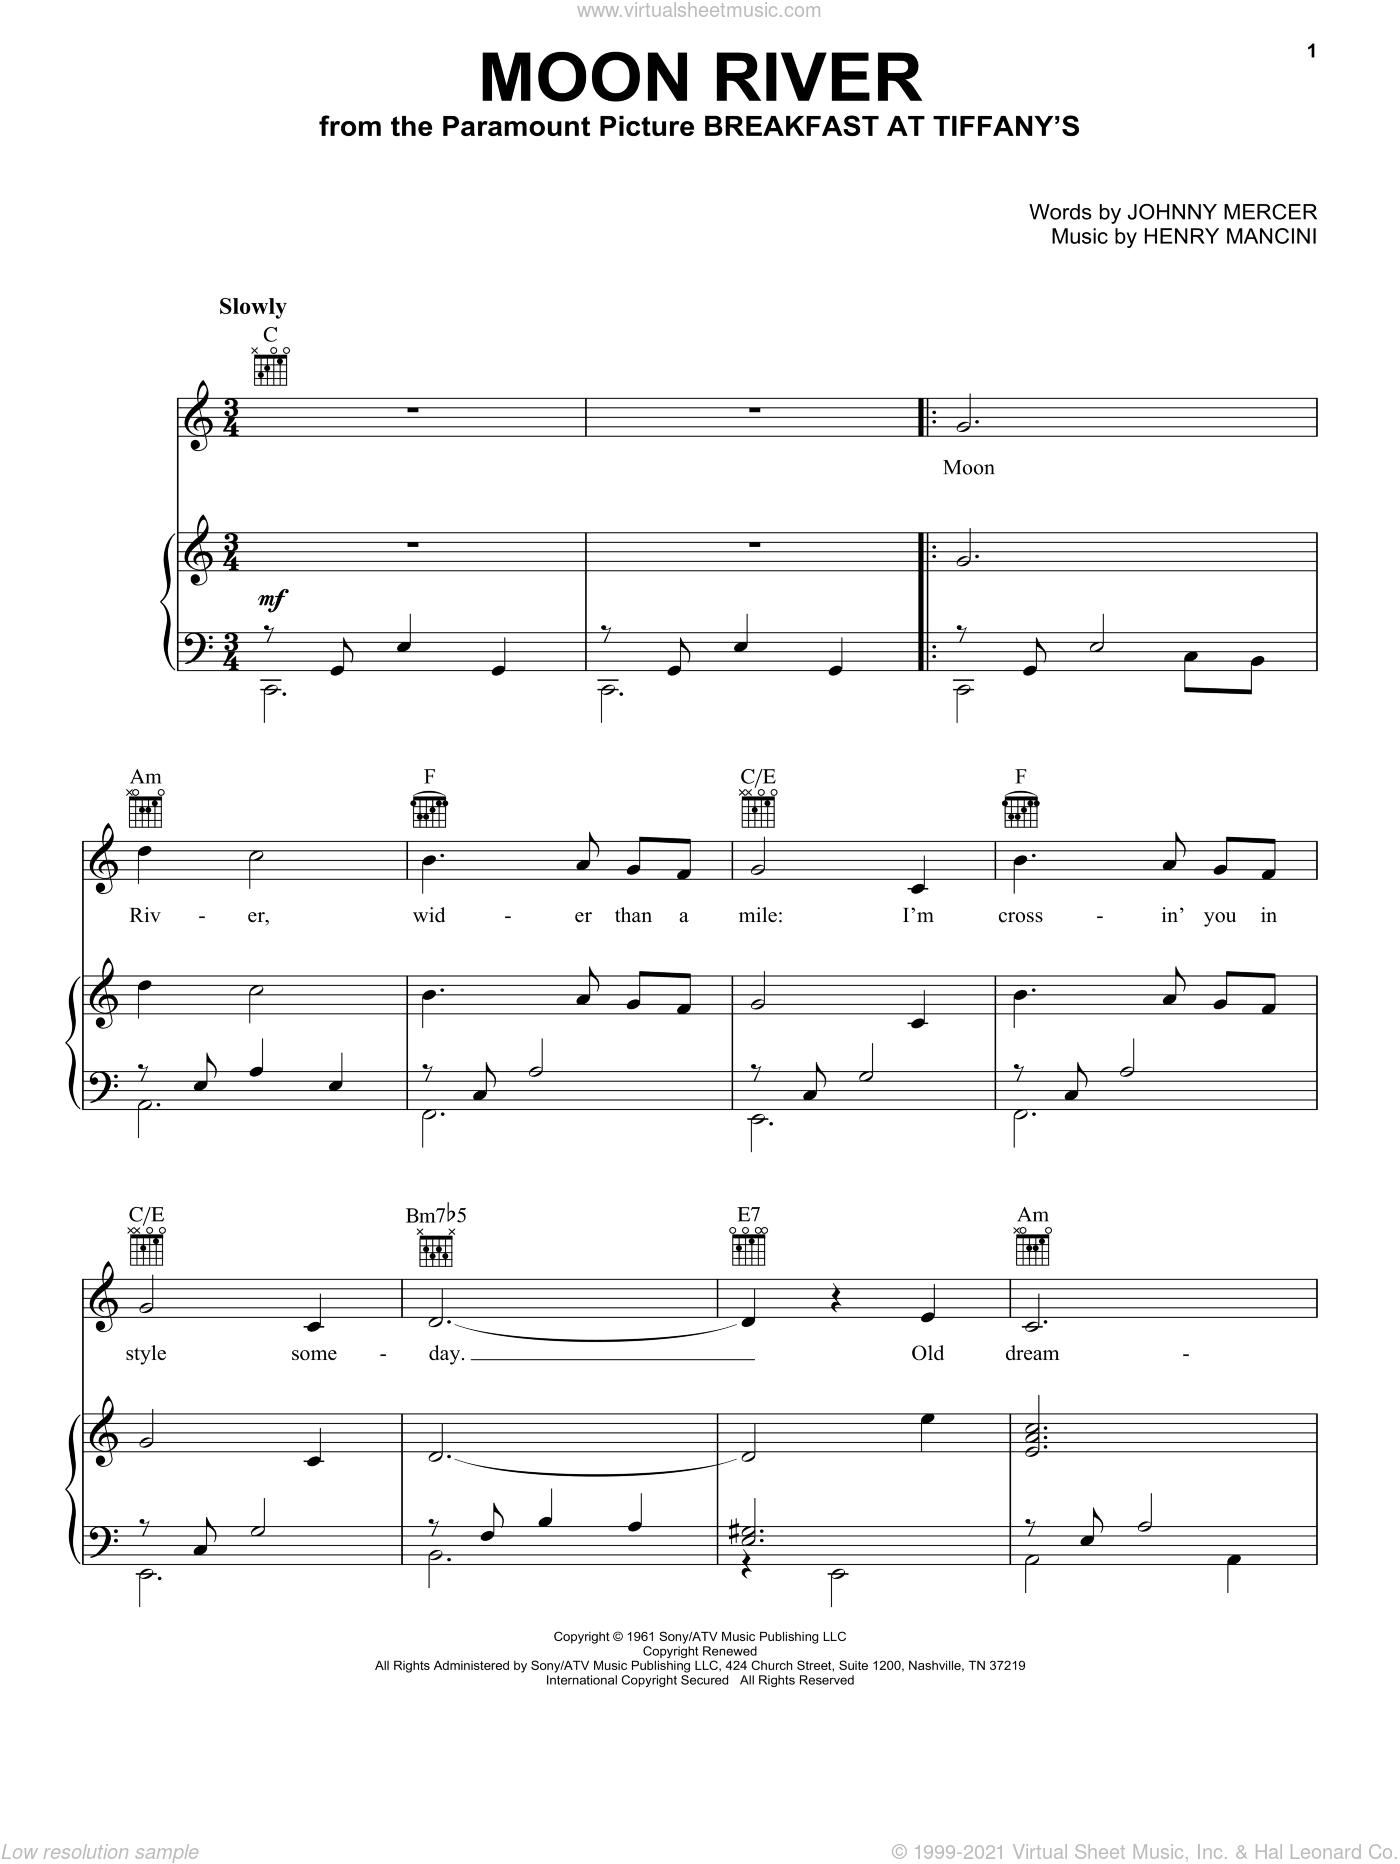 Moon River sheet music for voice, piano or guitar by Andy Williams, Frank Sinatra, Henry Mancini and Johnny Mercer, intermediate skill level